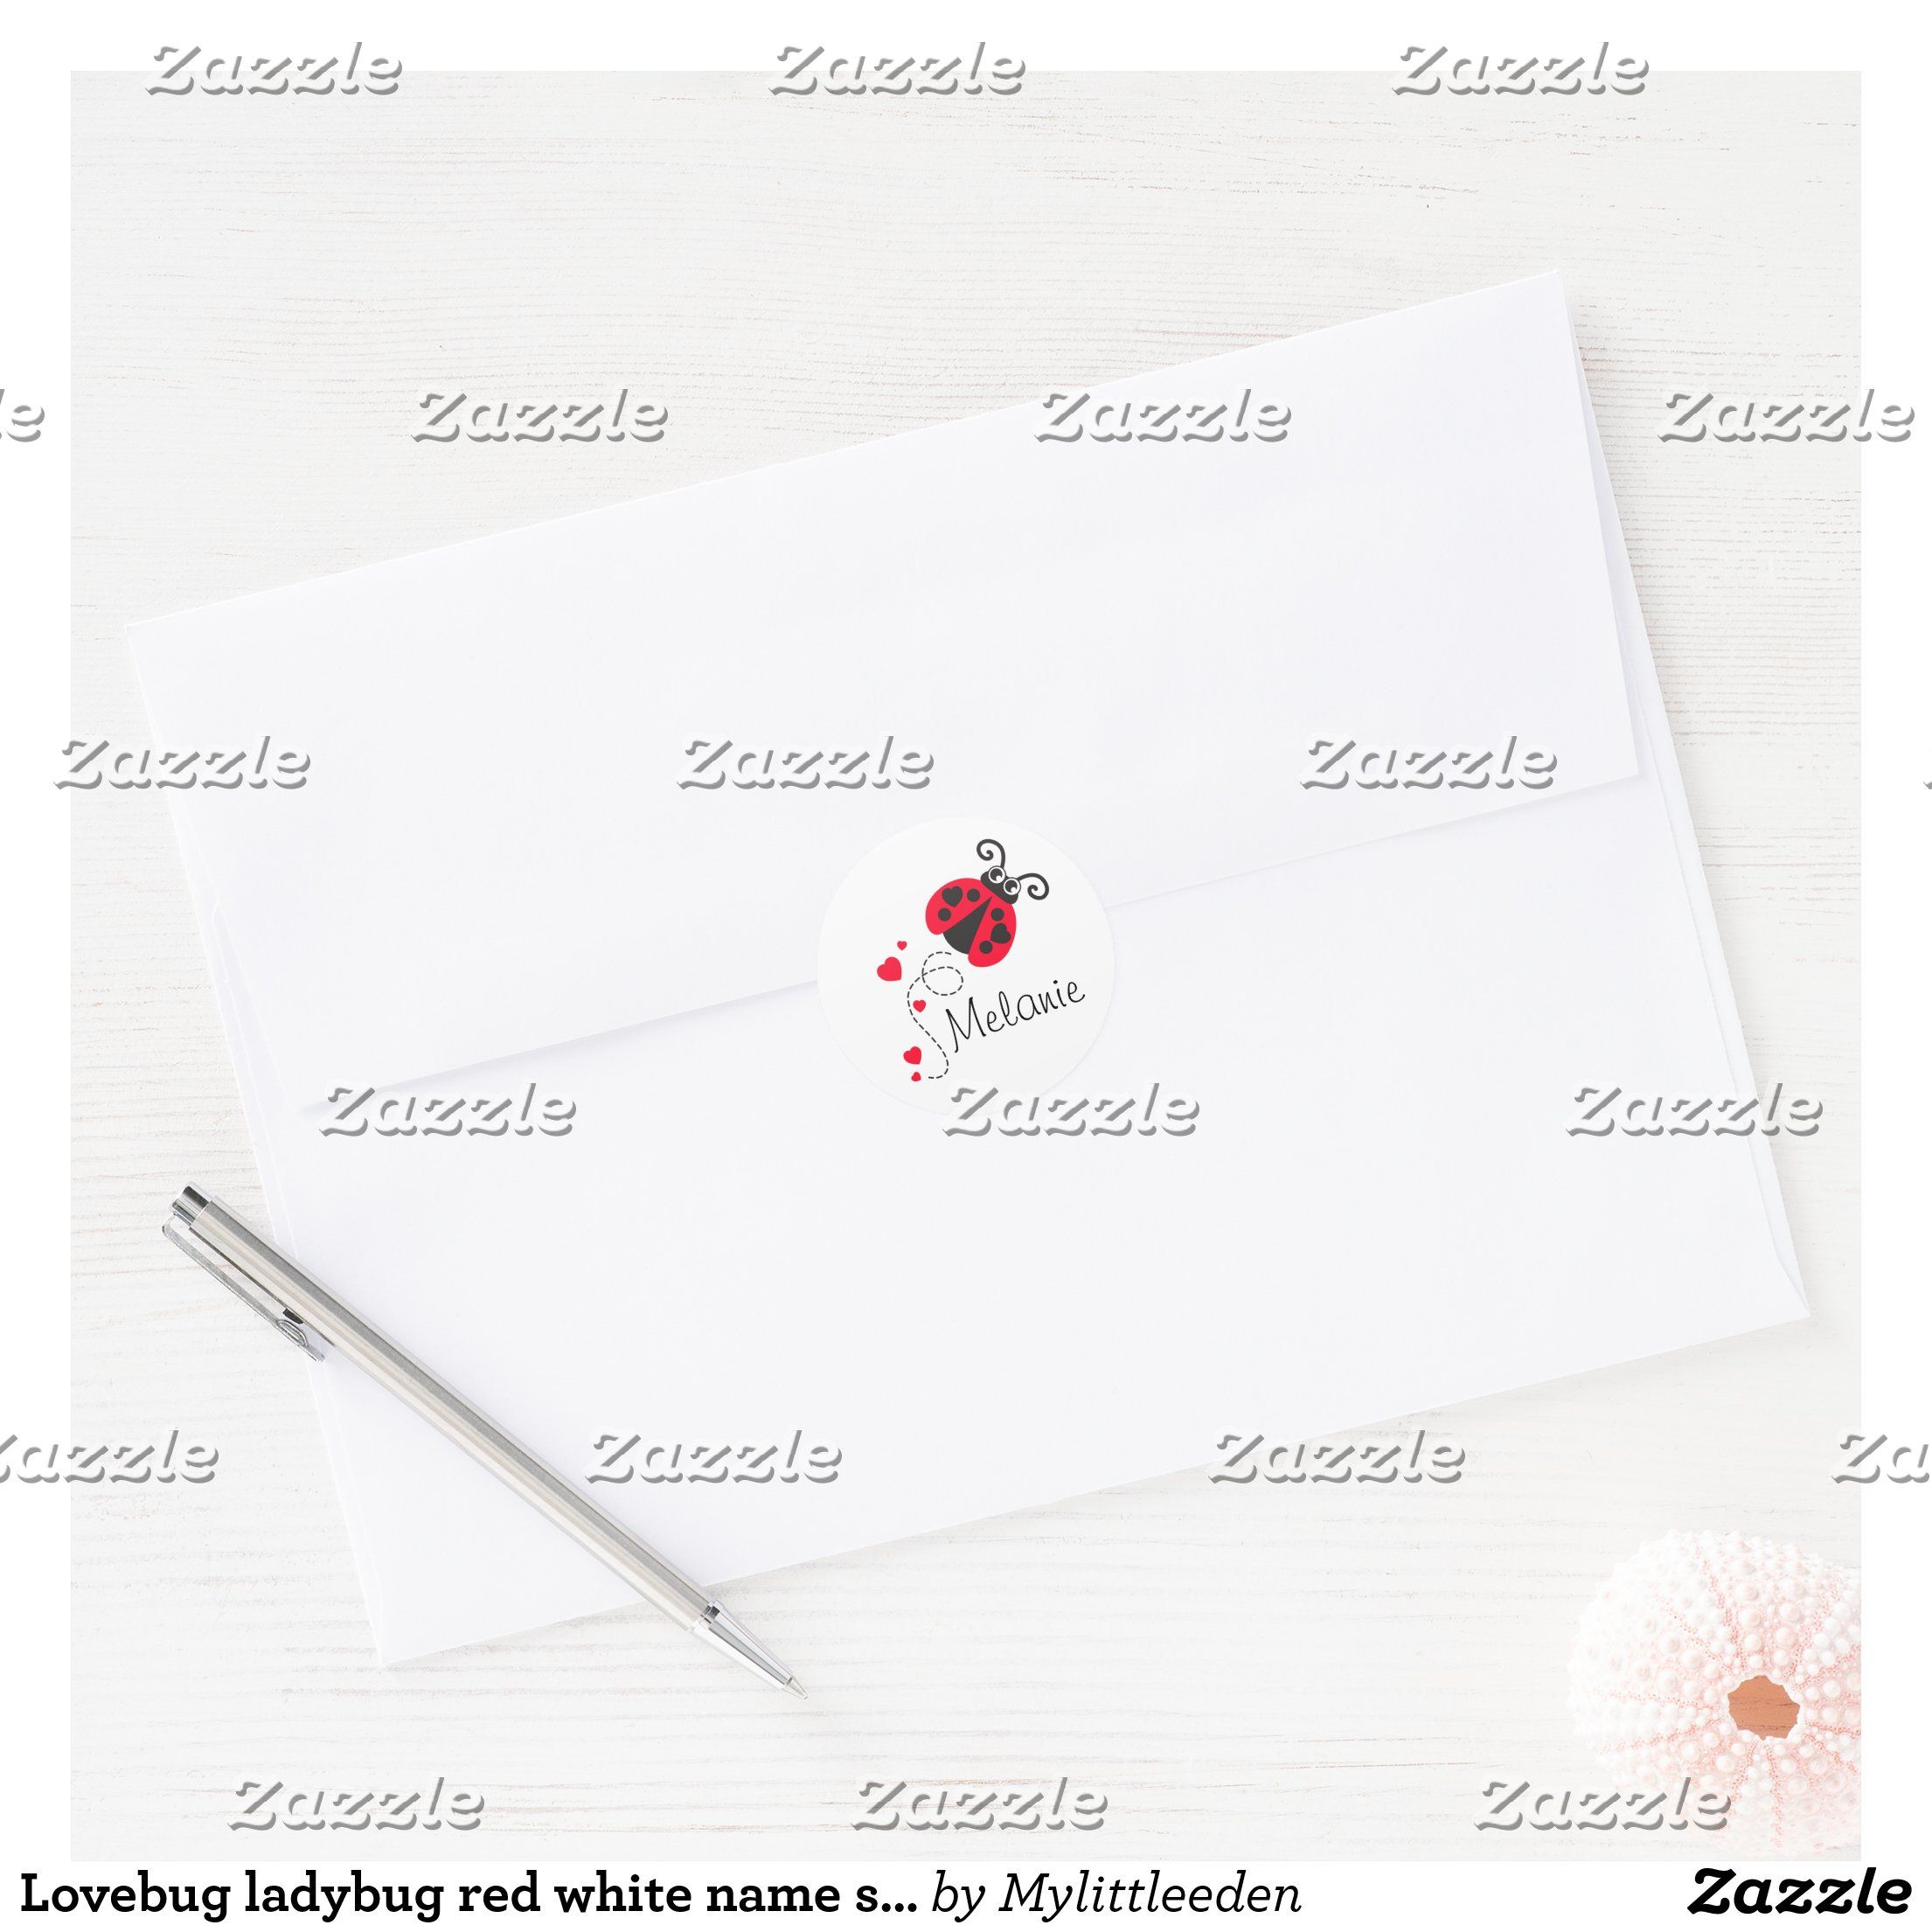 Lovebug ladybug red white name sticker | Zazzle.com